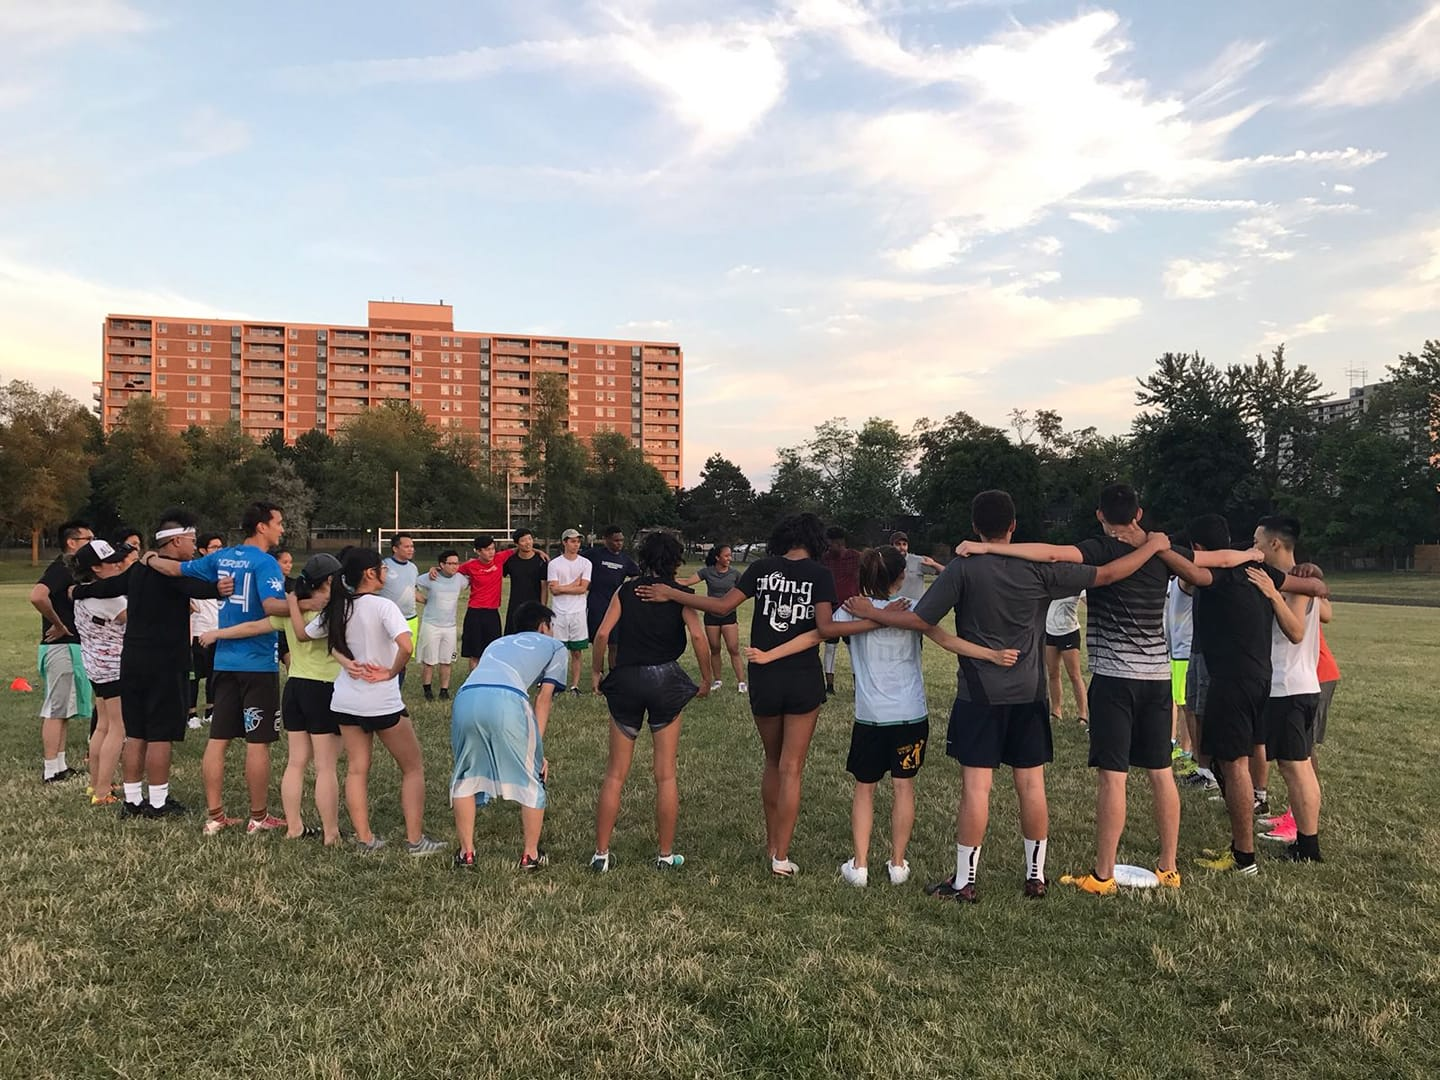 Media Release: Toronto's Ultimate Frisbee Community Helps Newcomers (Nov 13, 2018)